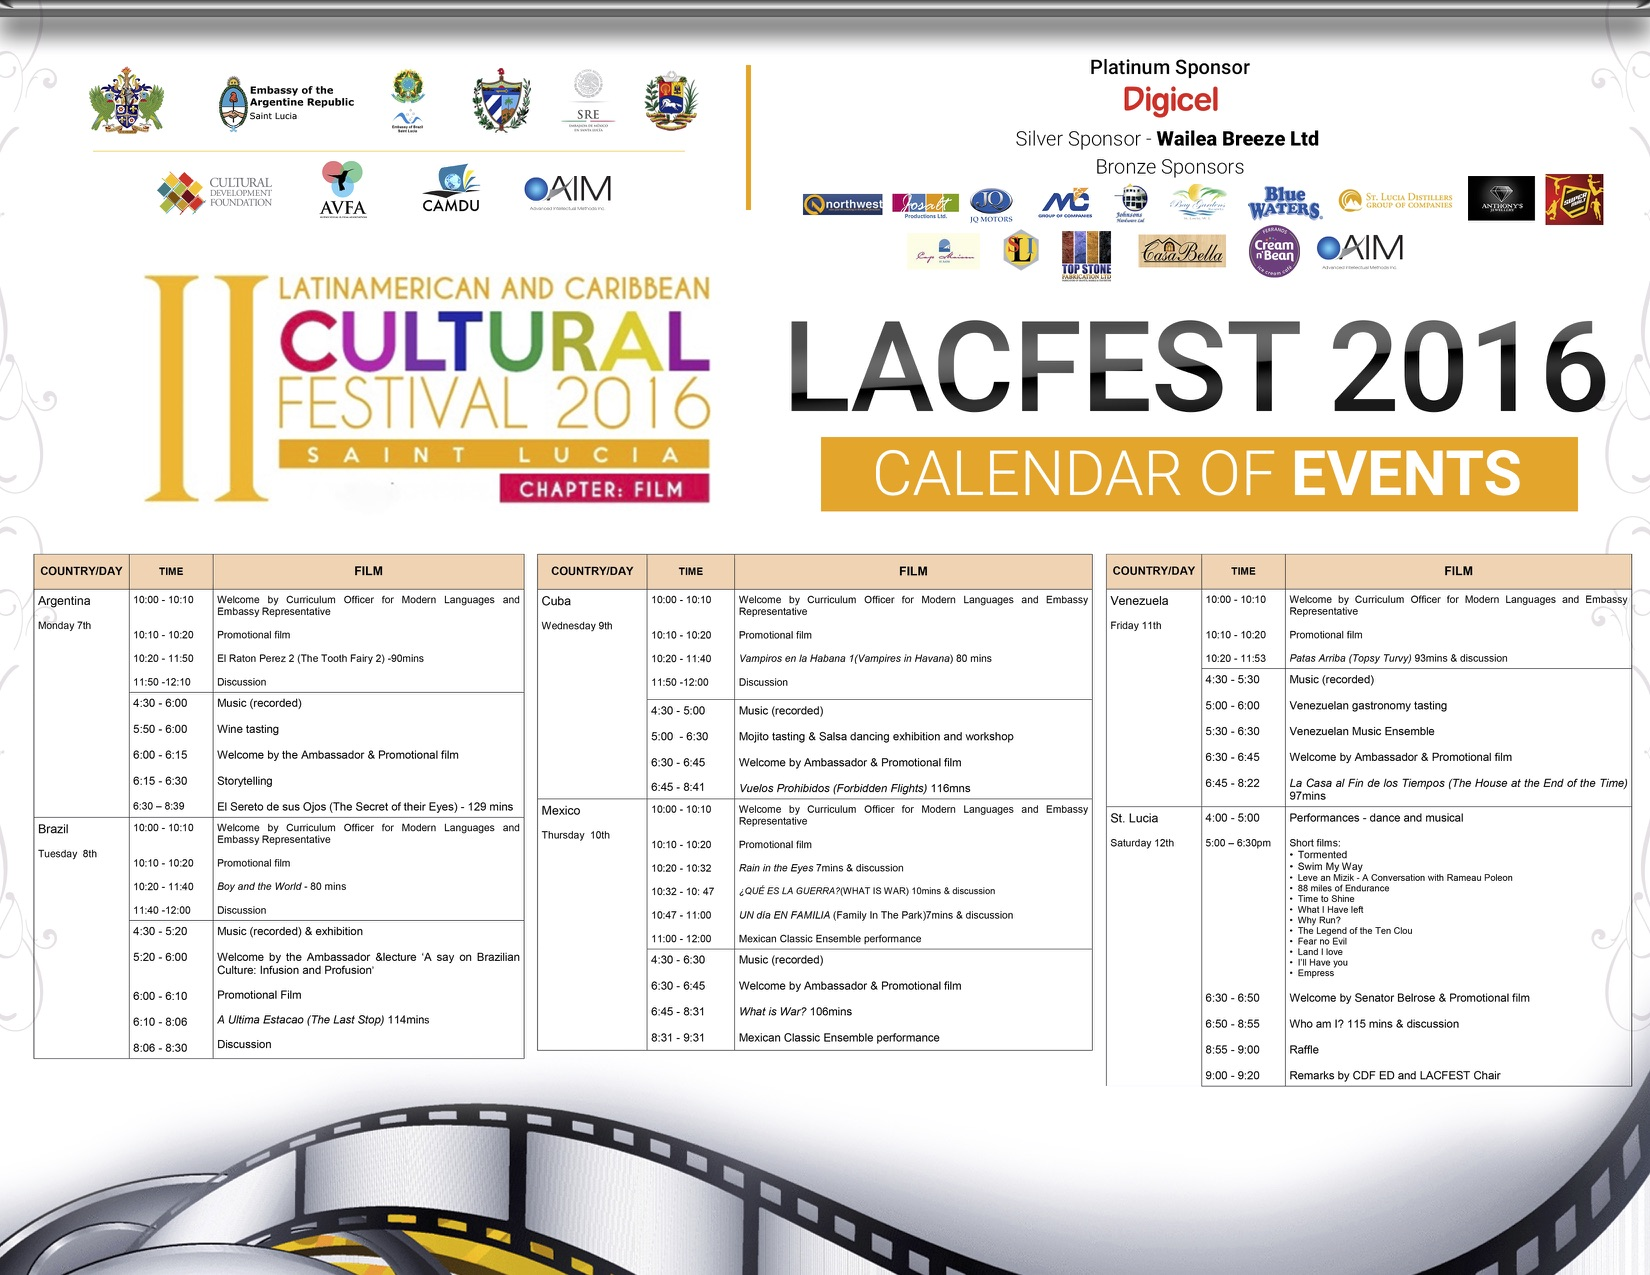 Event Calendar 2016 : Lacfest calendar of events released camdu st lucia